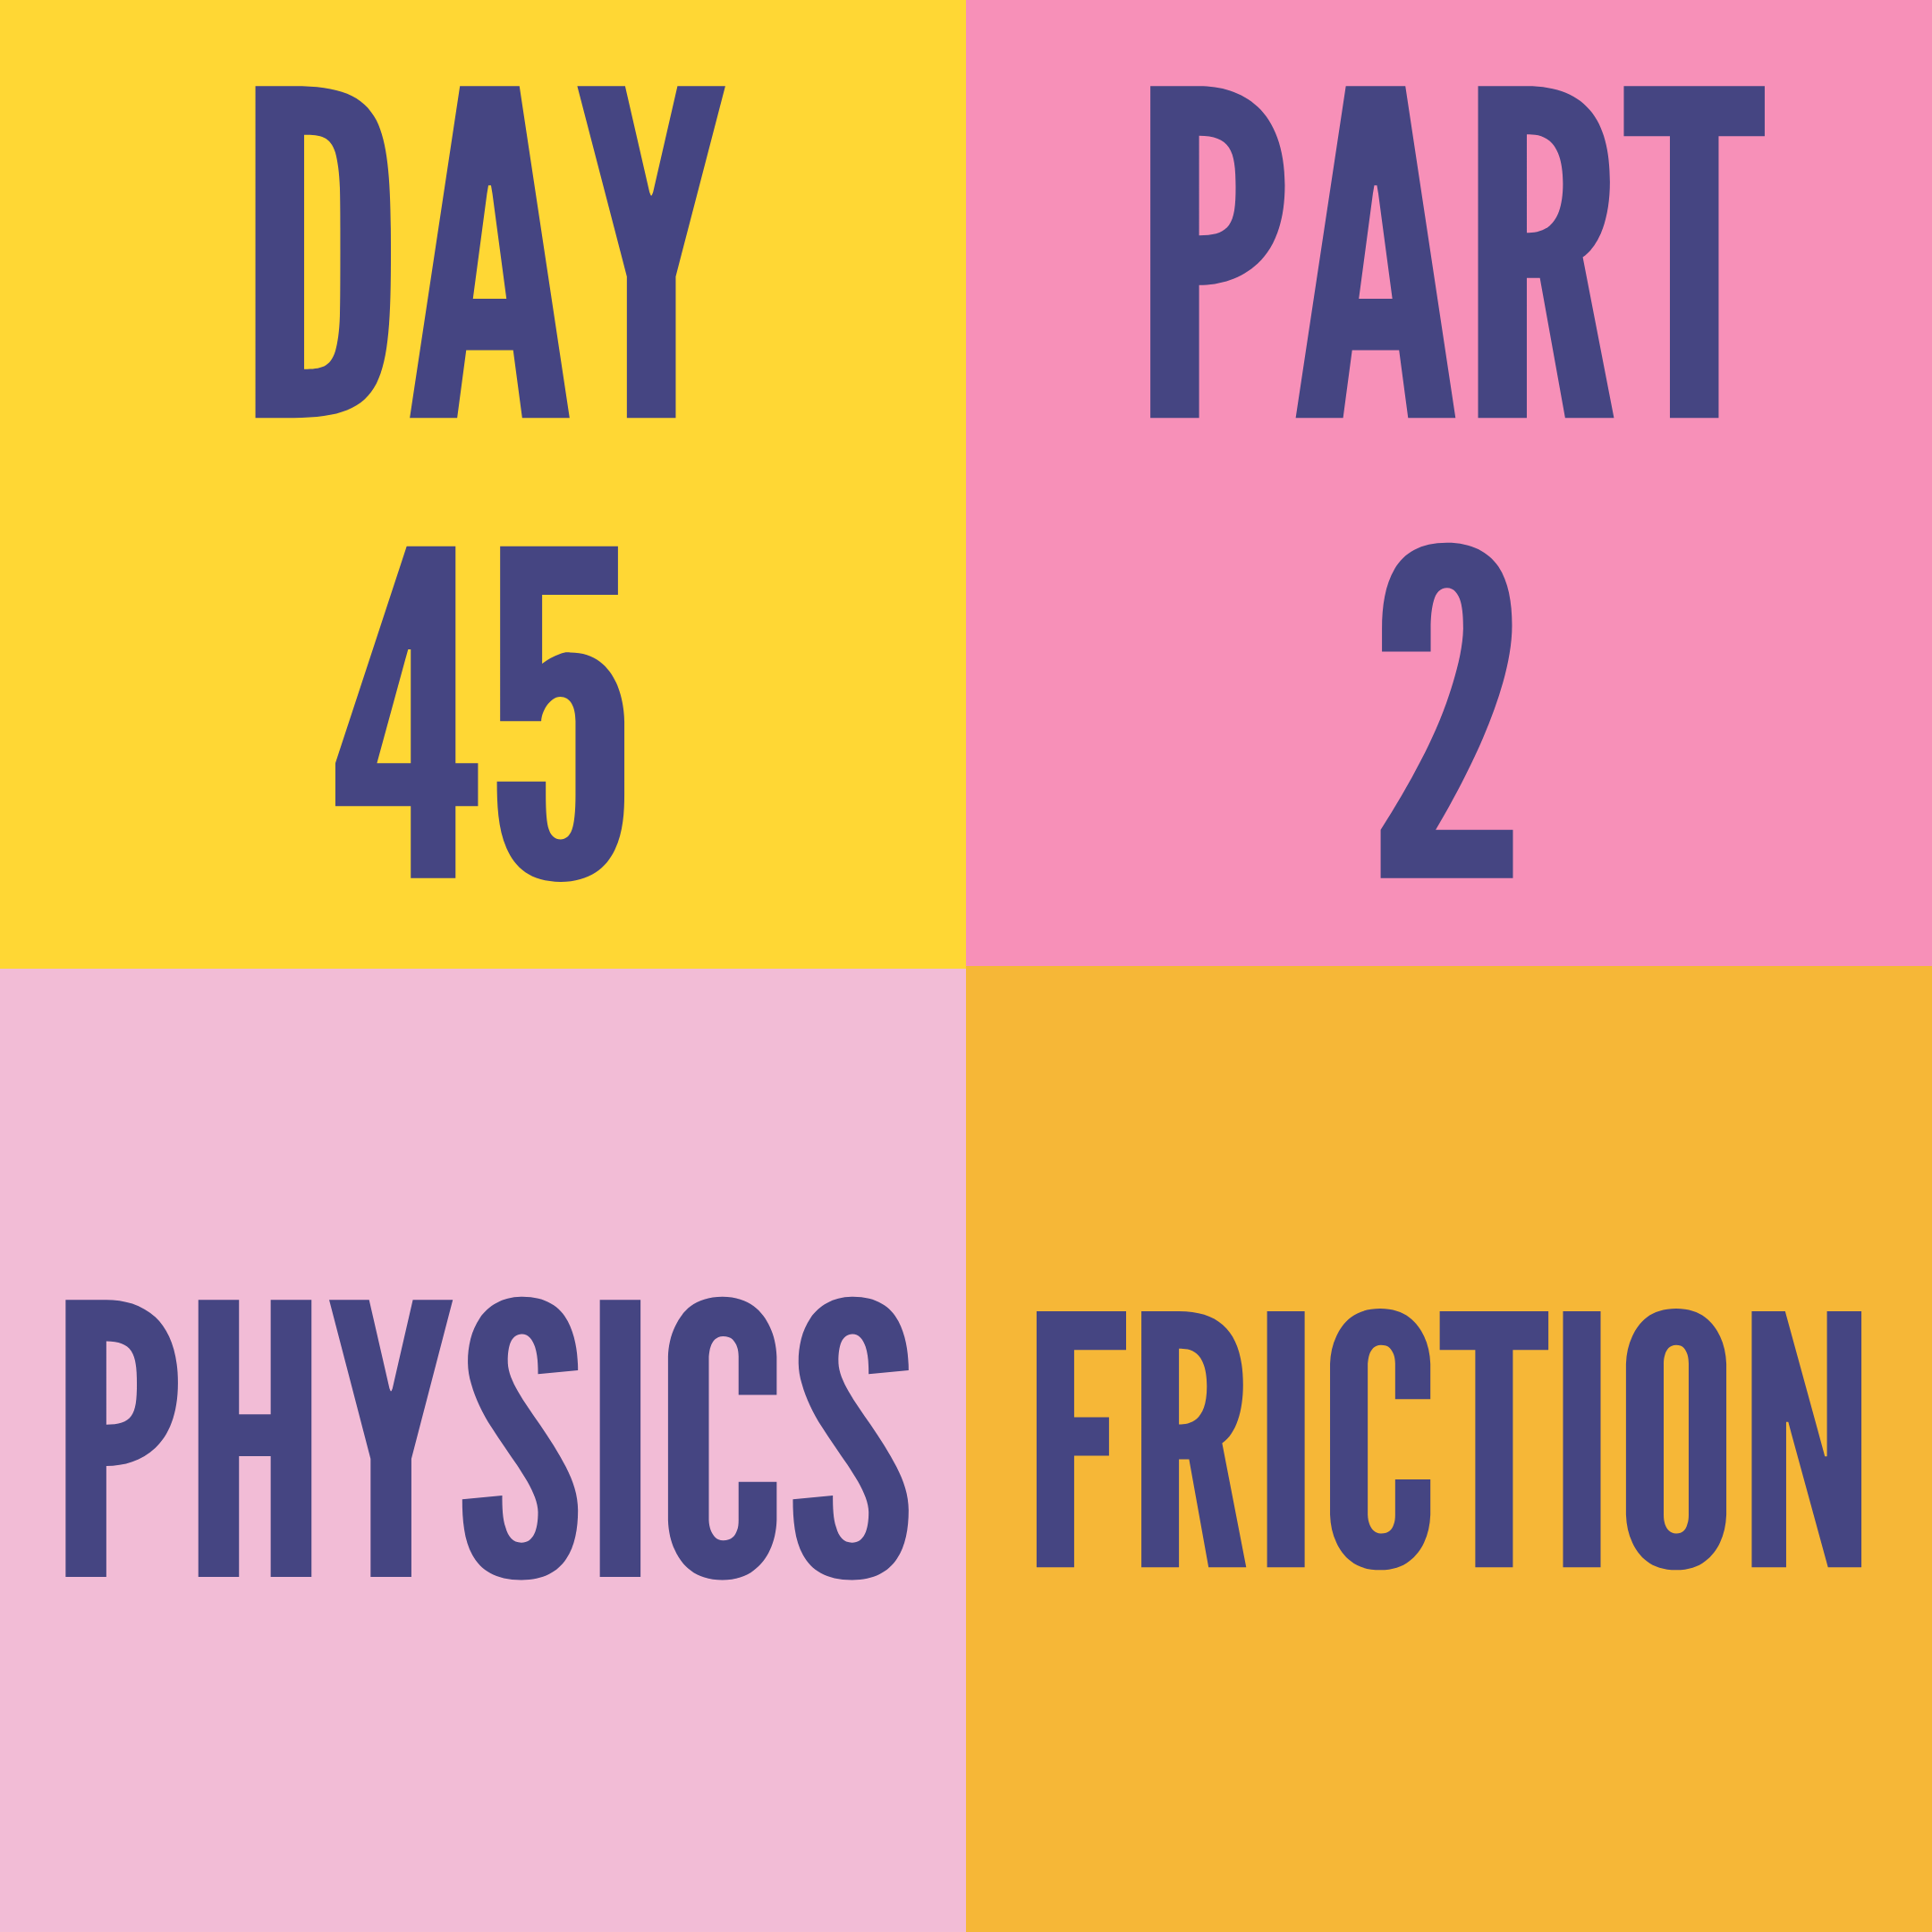 DAY-45 PART- 2 FRICTION